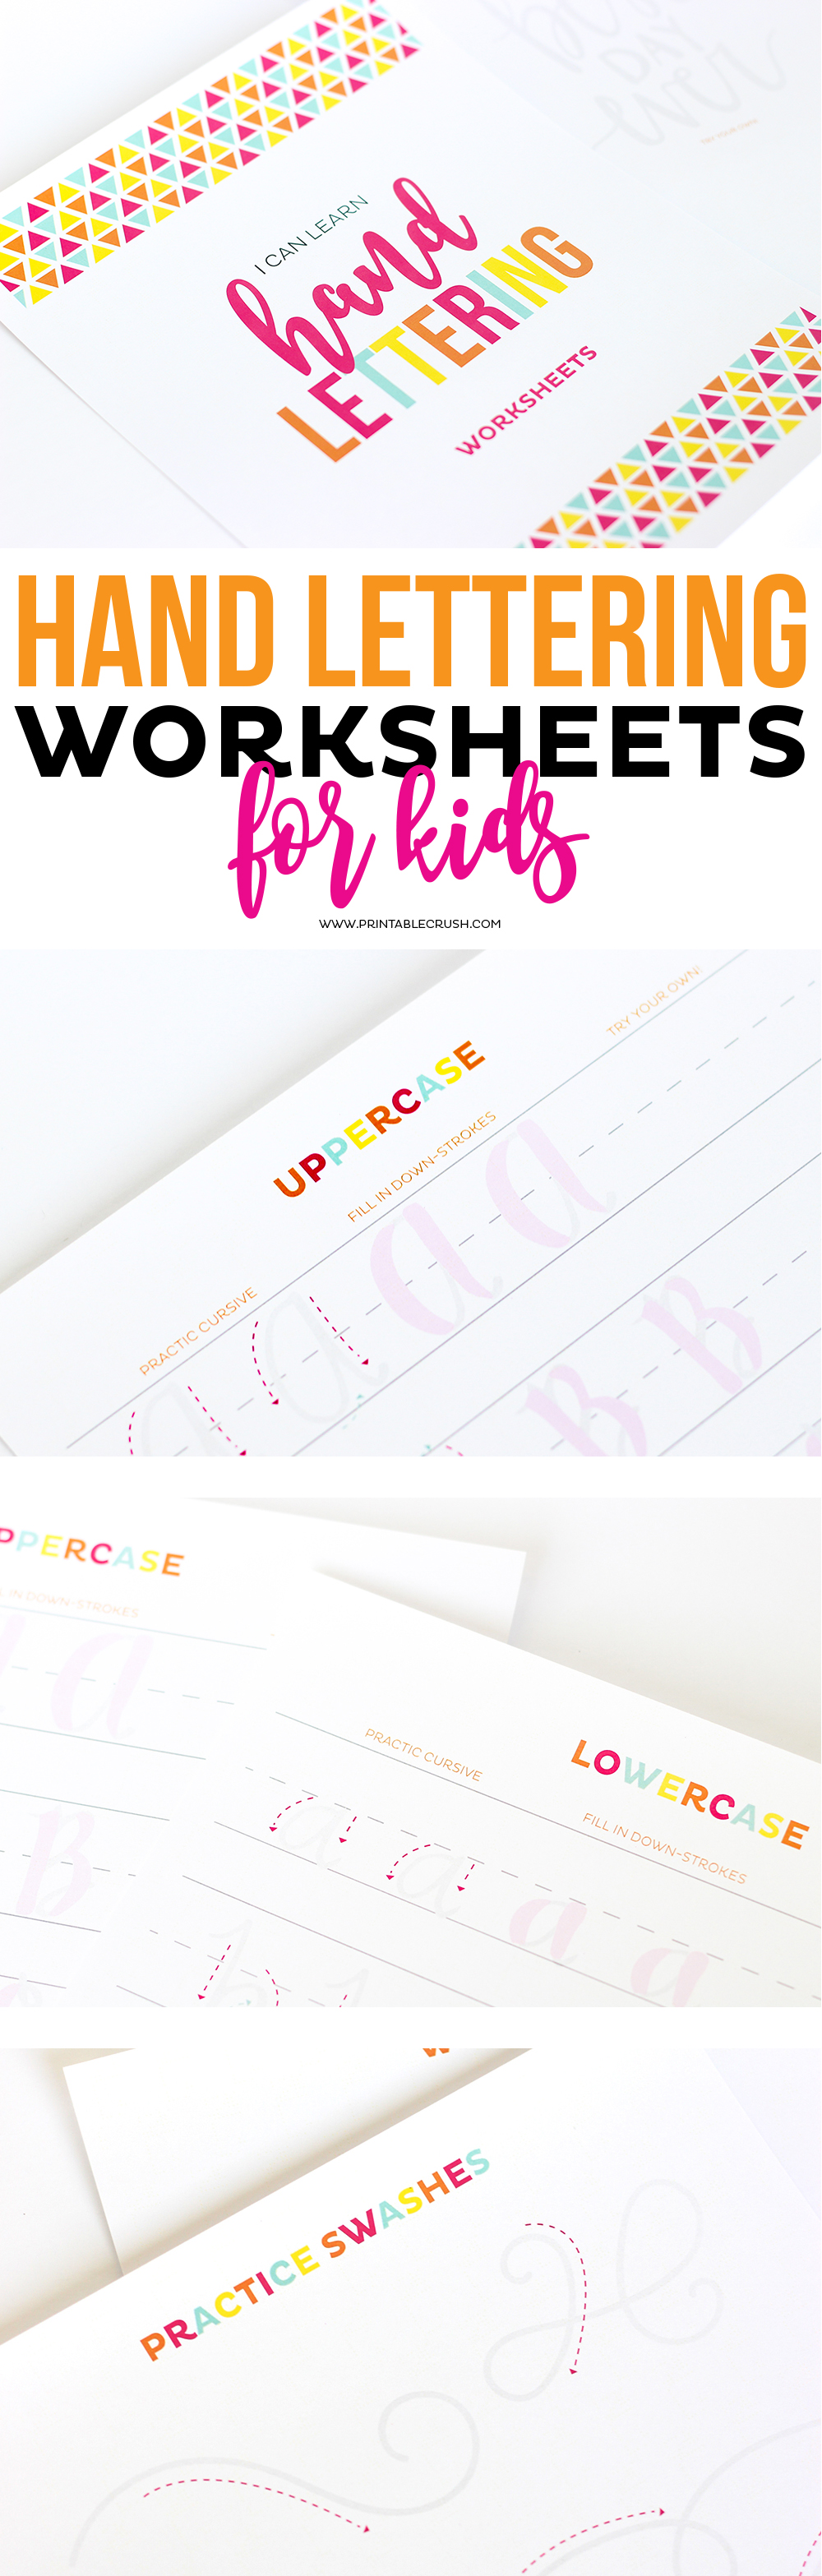 Teach Your Kids Hand Lettering With These Worksheets For This Is Great